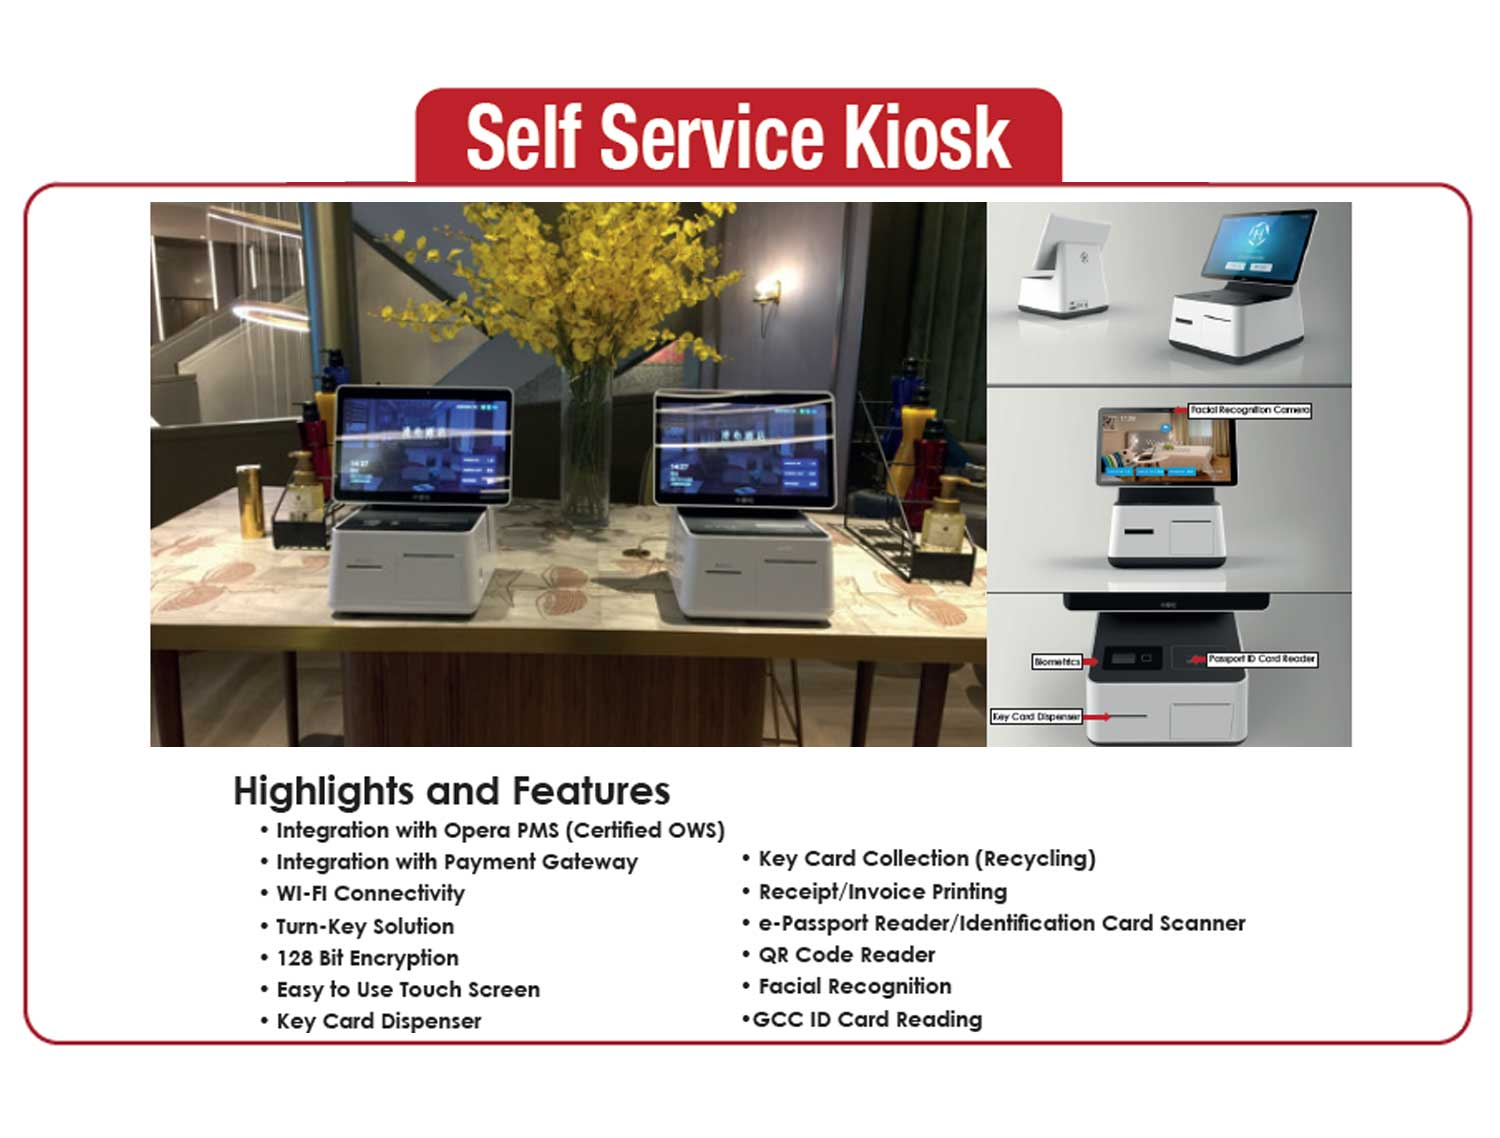 Mobile Check-In Self Service Kiosk Solutions